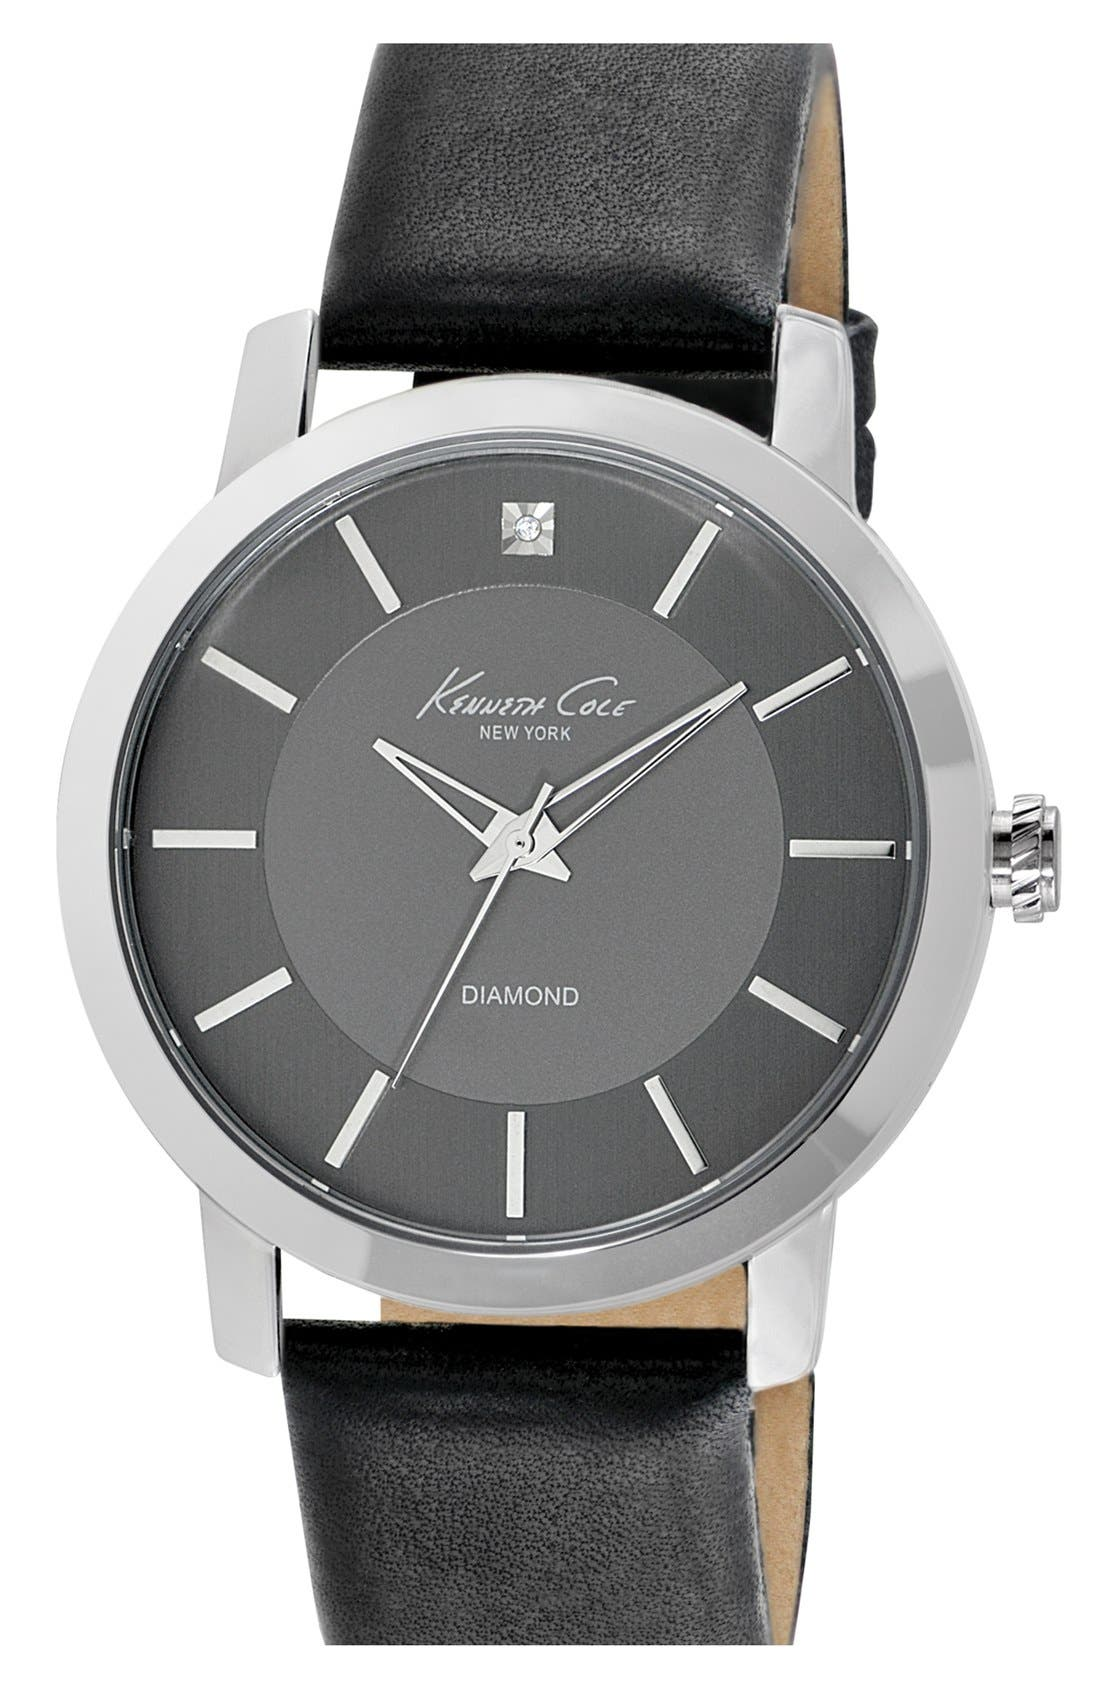 Main Image - Kenneth Cole New York Diamond Marker Leather Strap Watch, 44mm